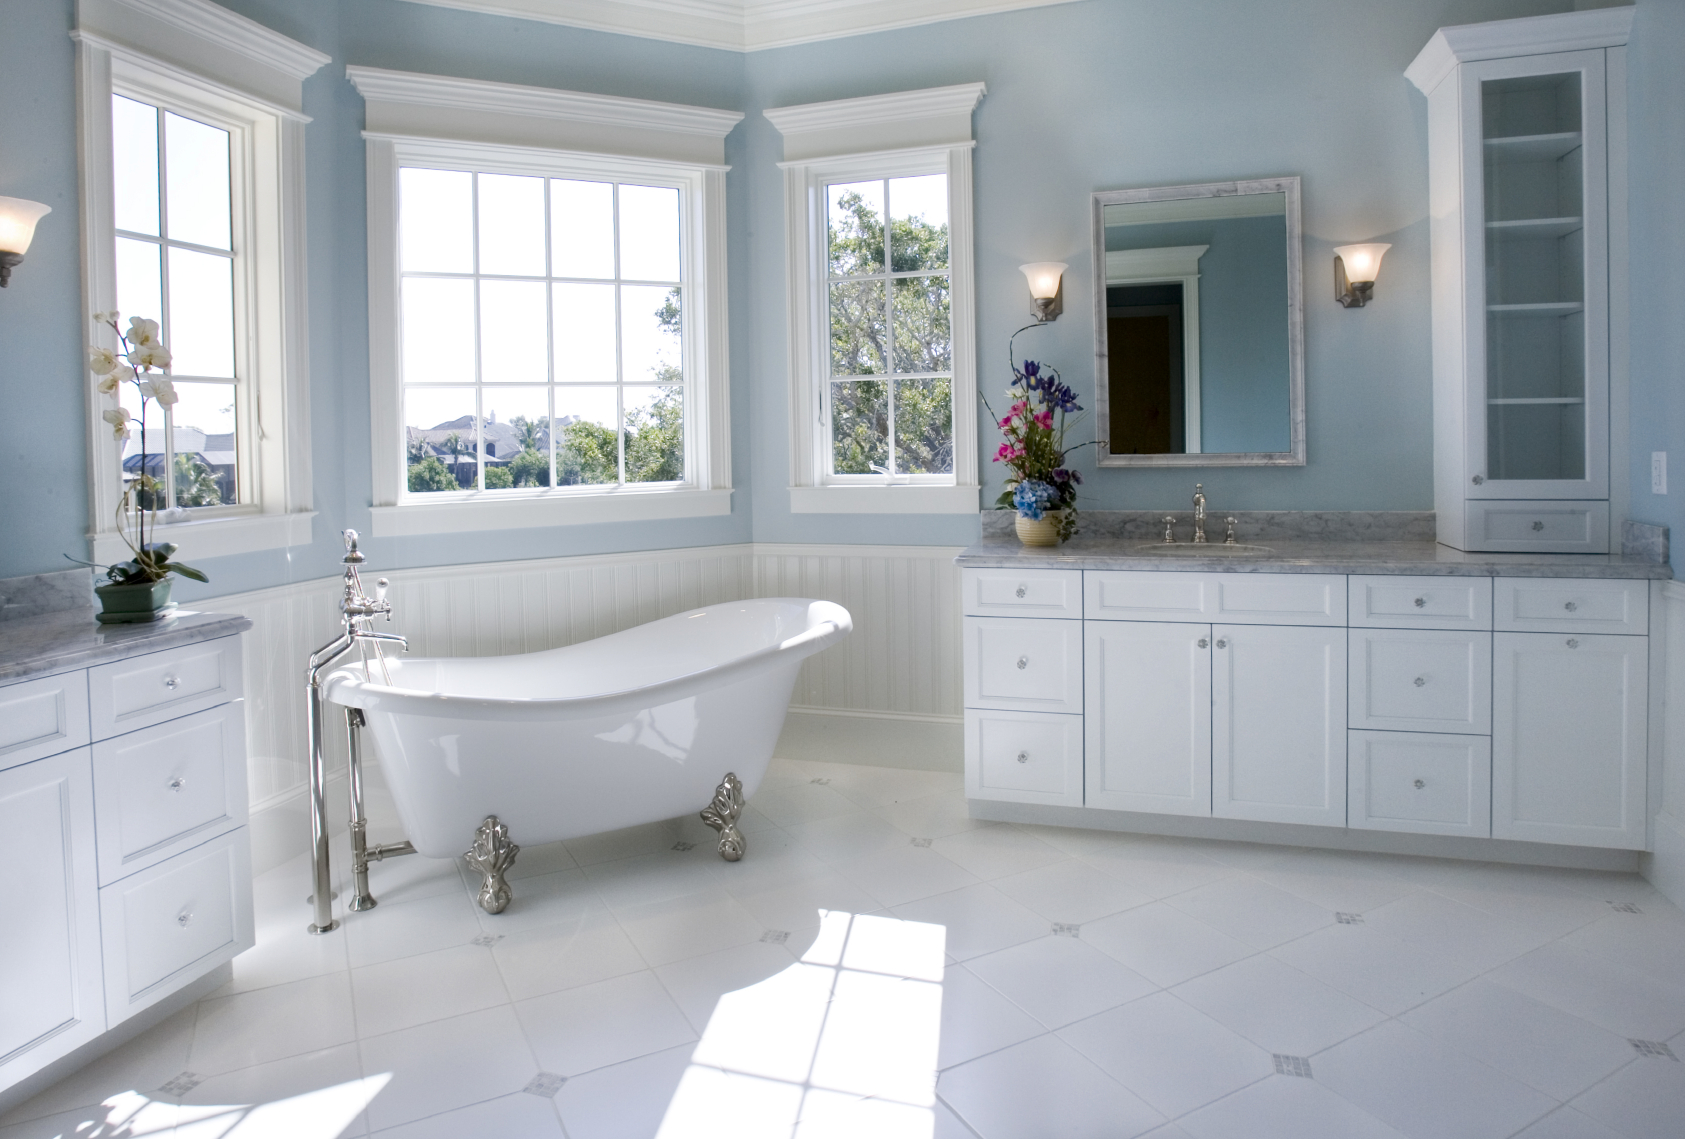 luxury white bathroom designs kitchen and bath design Soft sky blue walls float above the white cabinetry and marble flooring in this bathroom